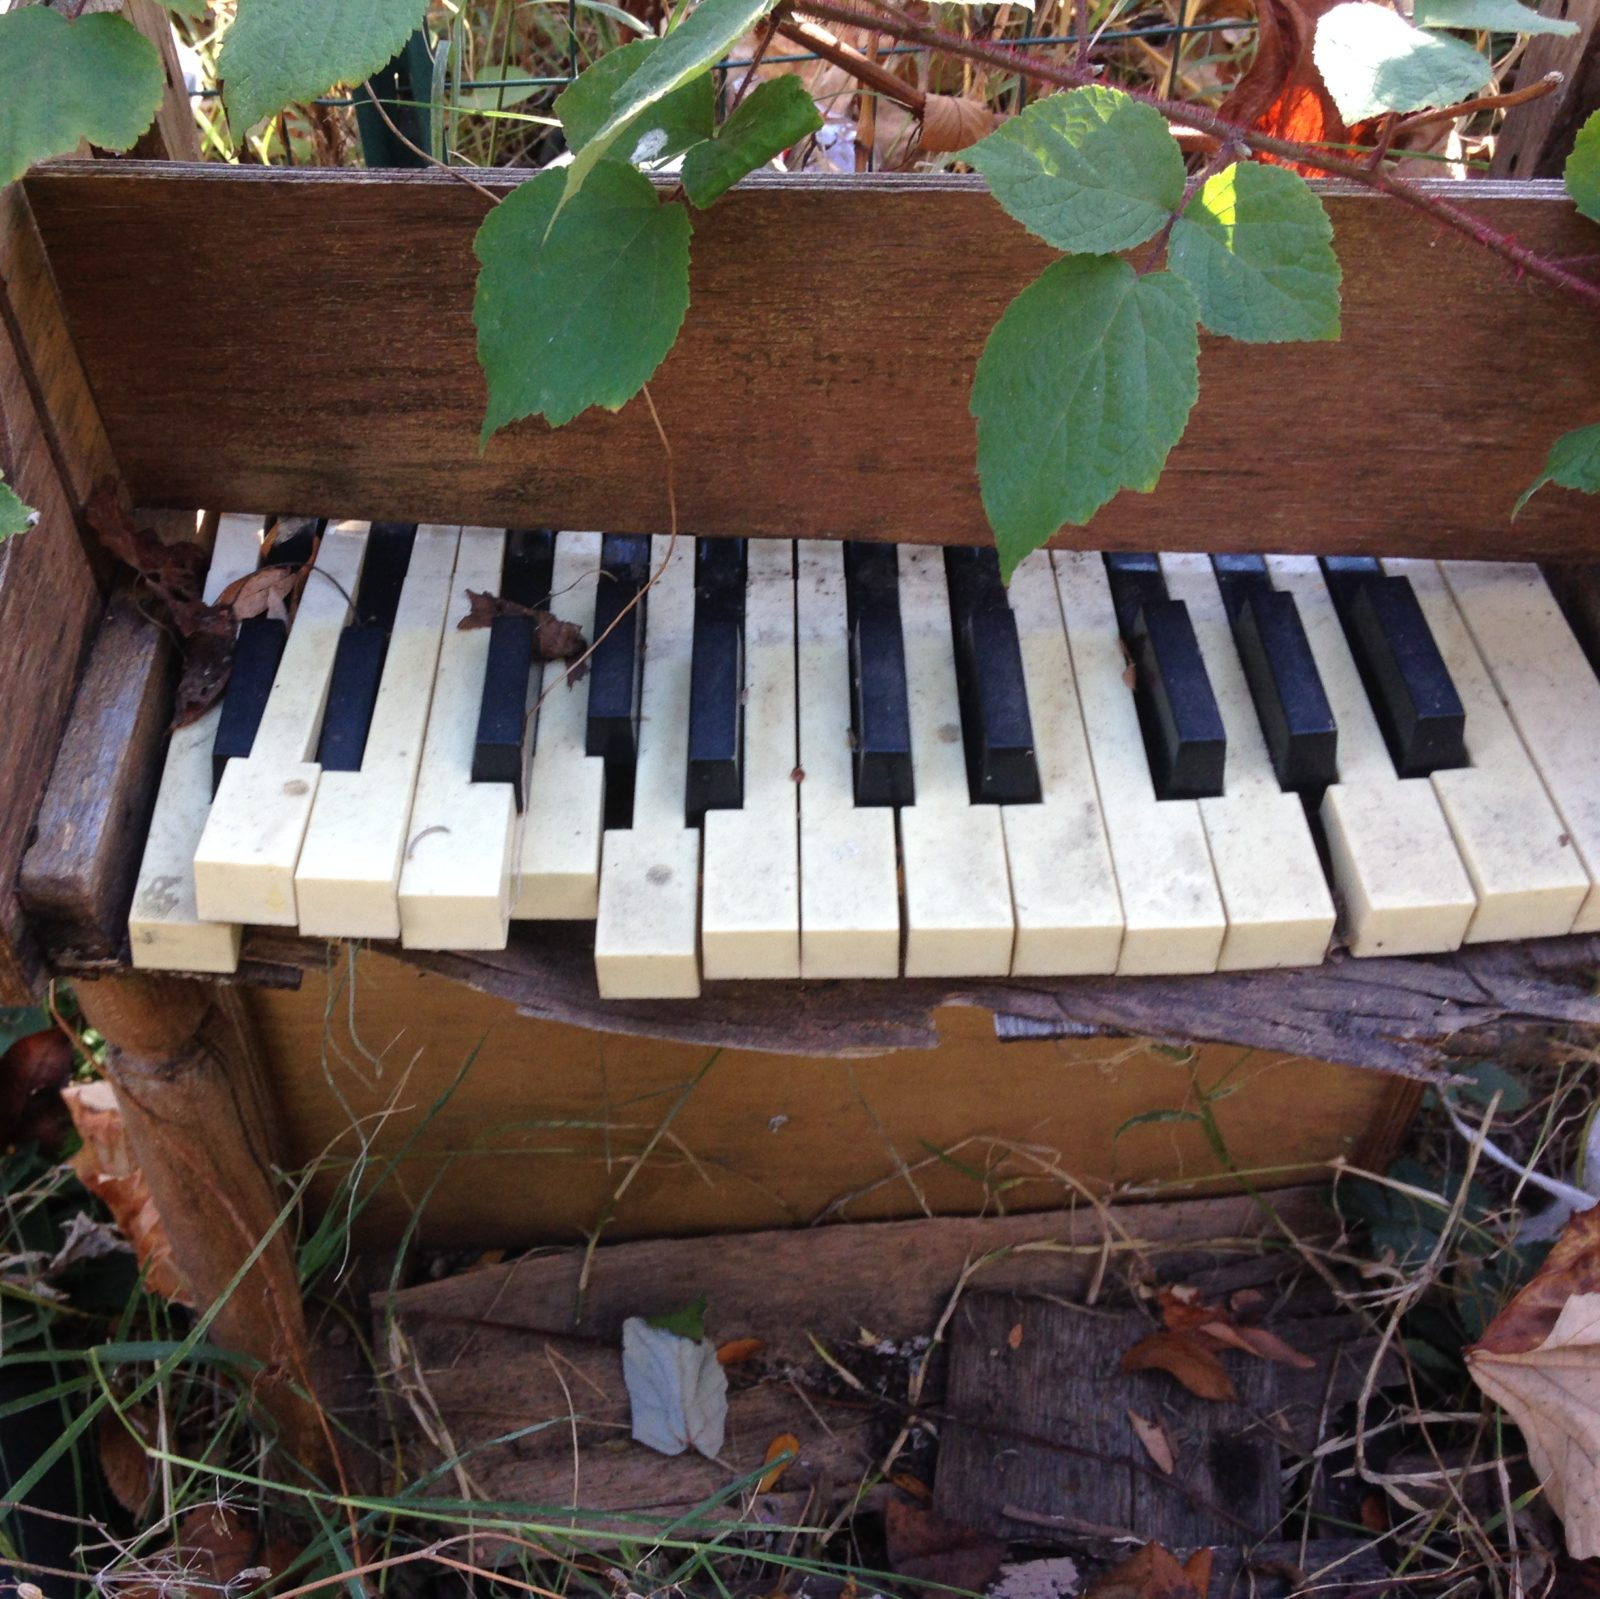 UnCaged Toy Piano